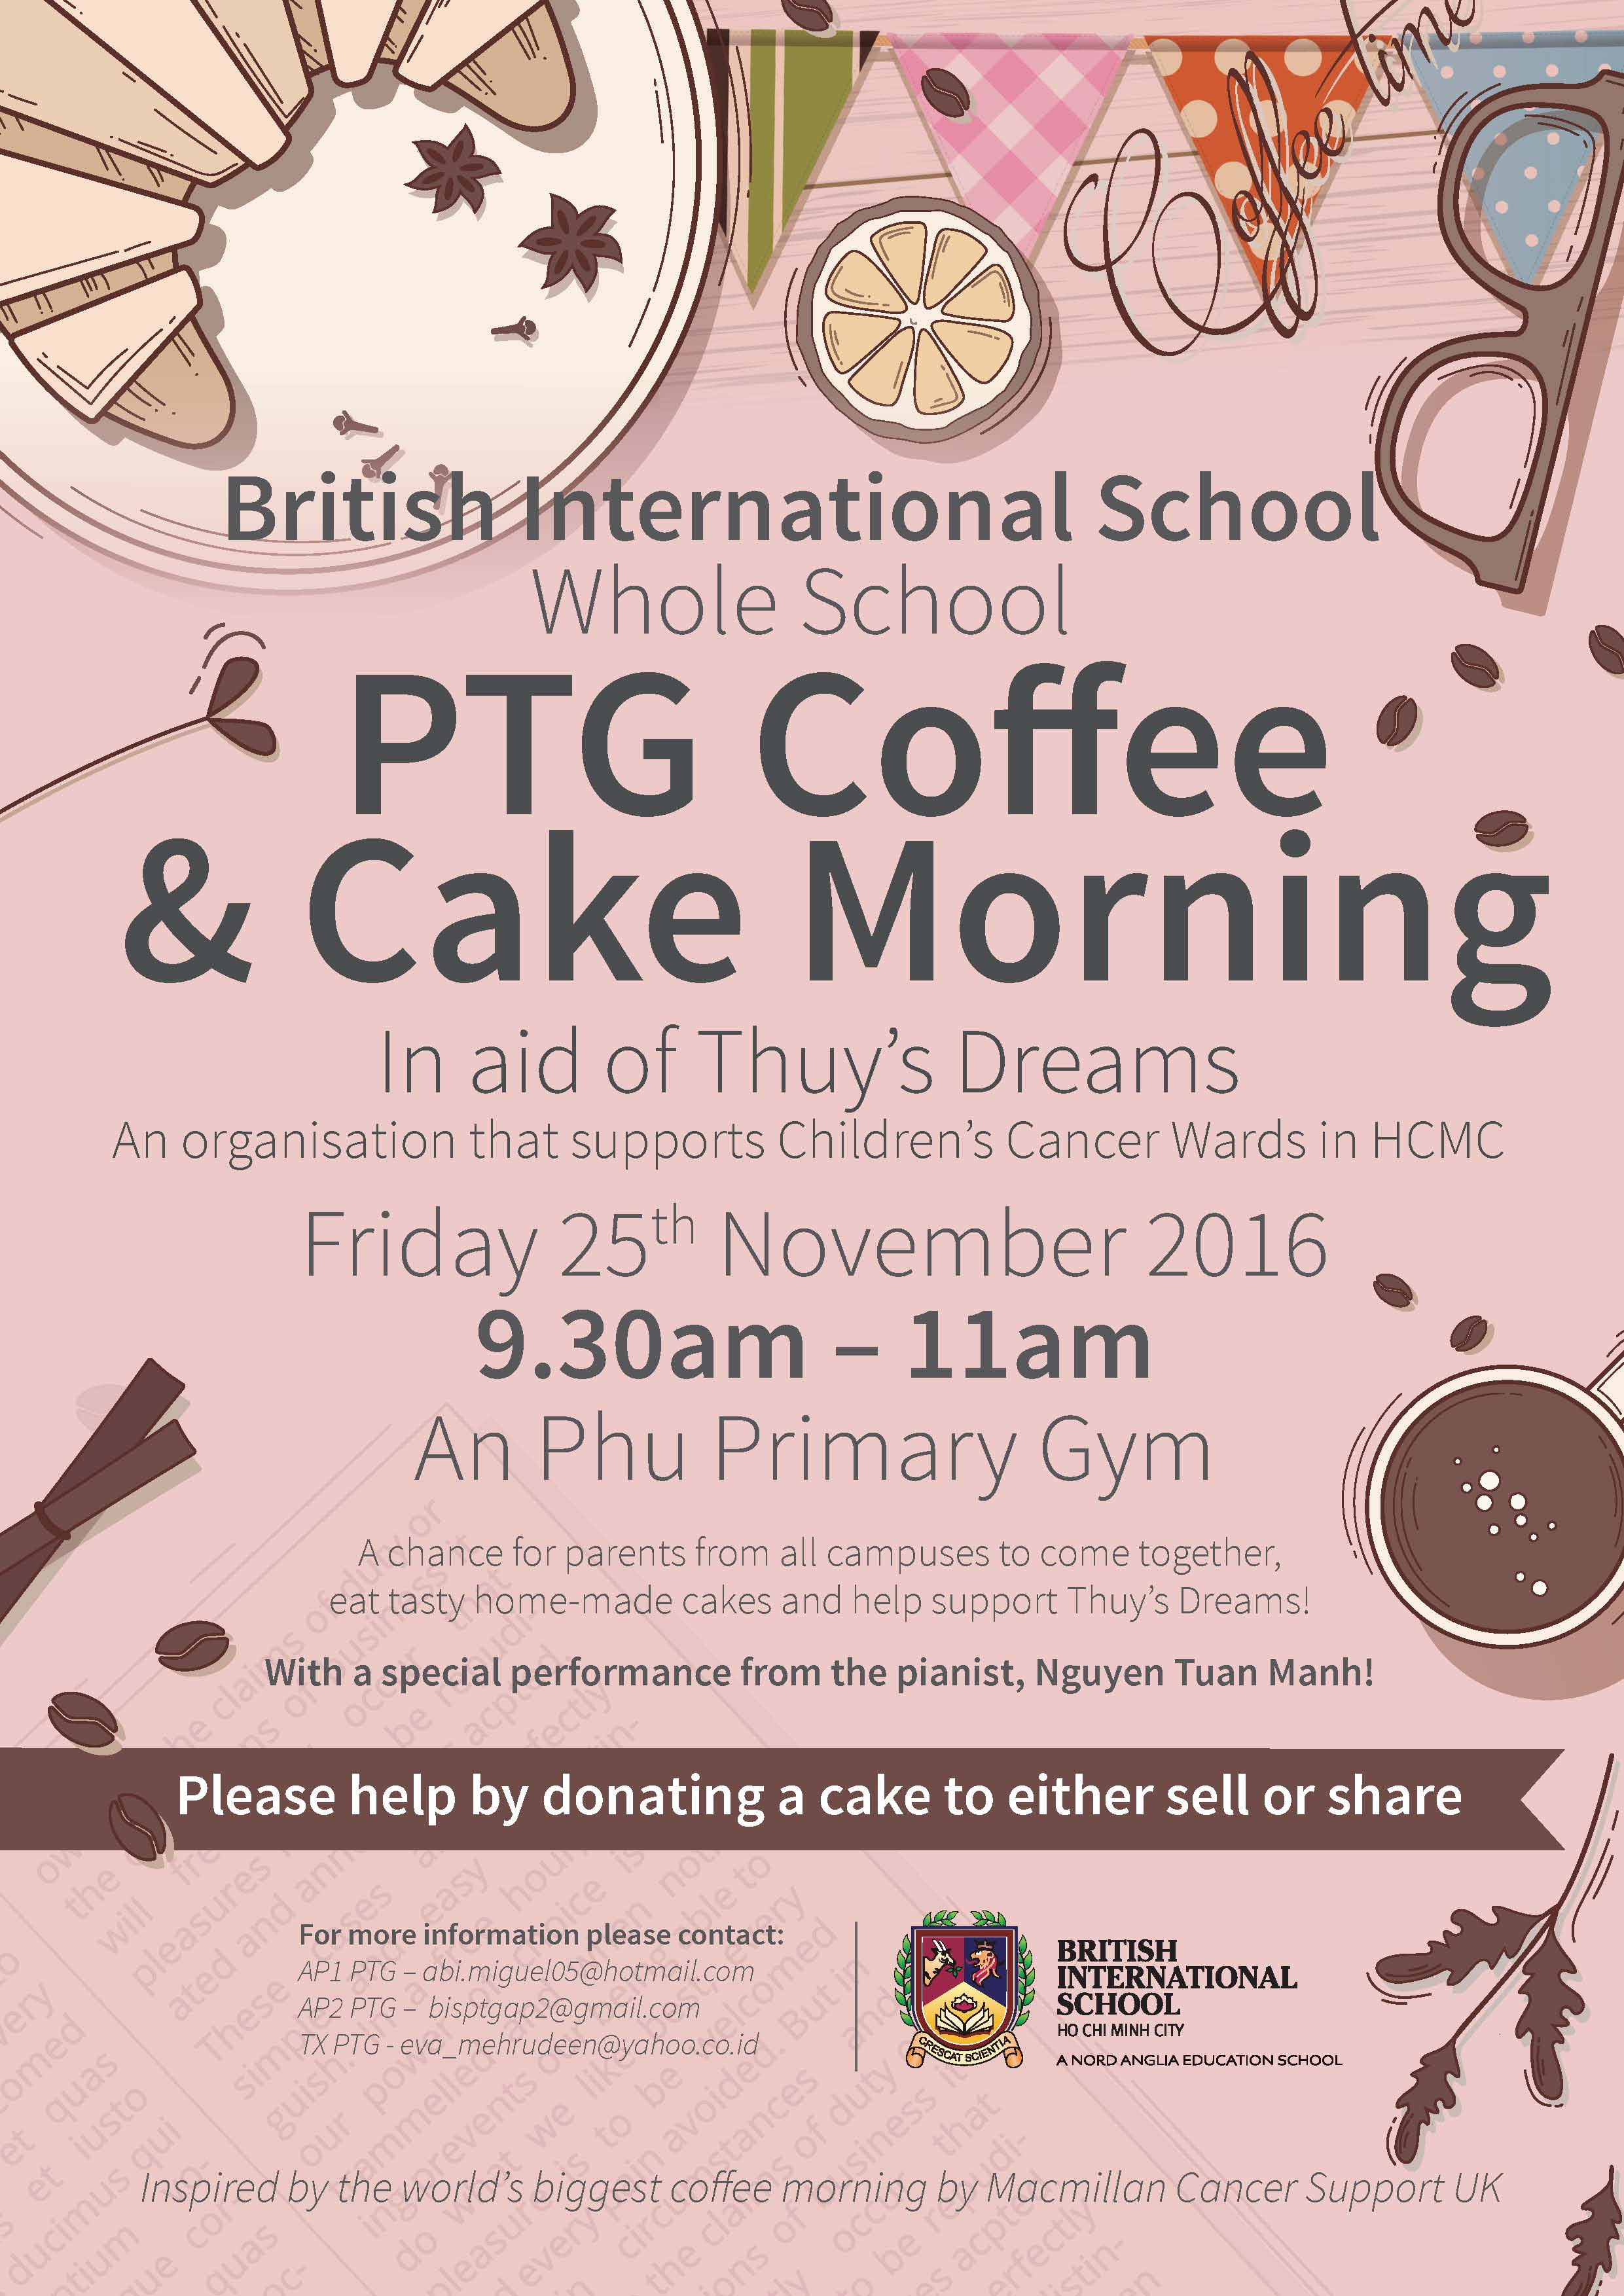 British International School PTG Coffee and Cake Morning (Whole School)